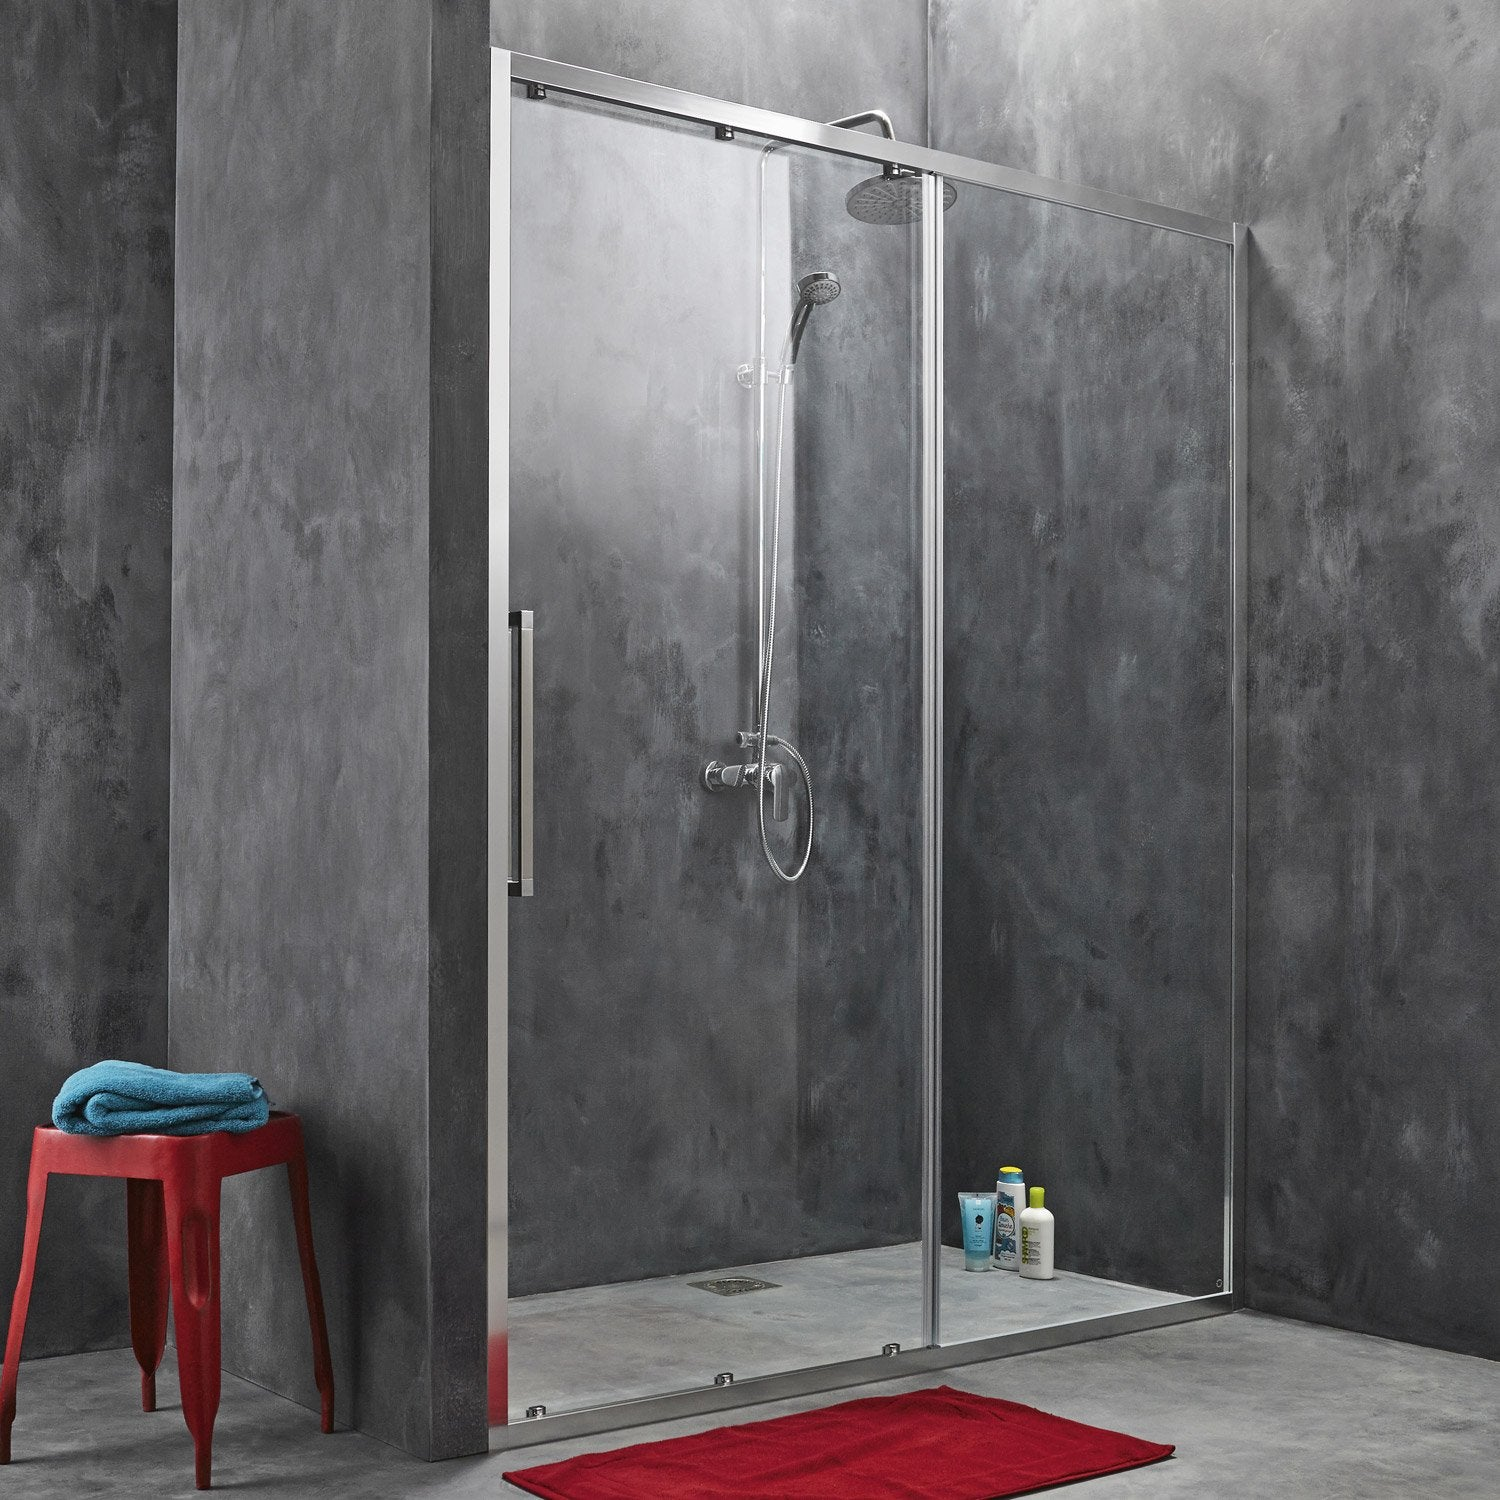 Porte de douche coulissante sensea purity 3 verre transparent chrom 160 cm - Leroy merlin porte en verre ...